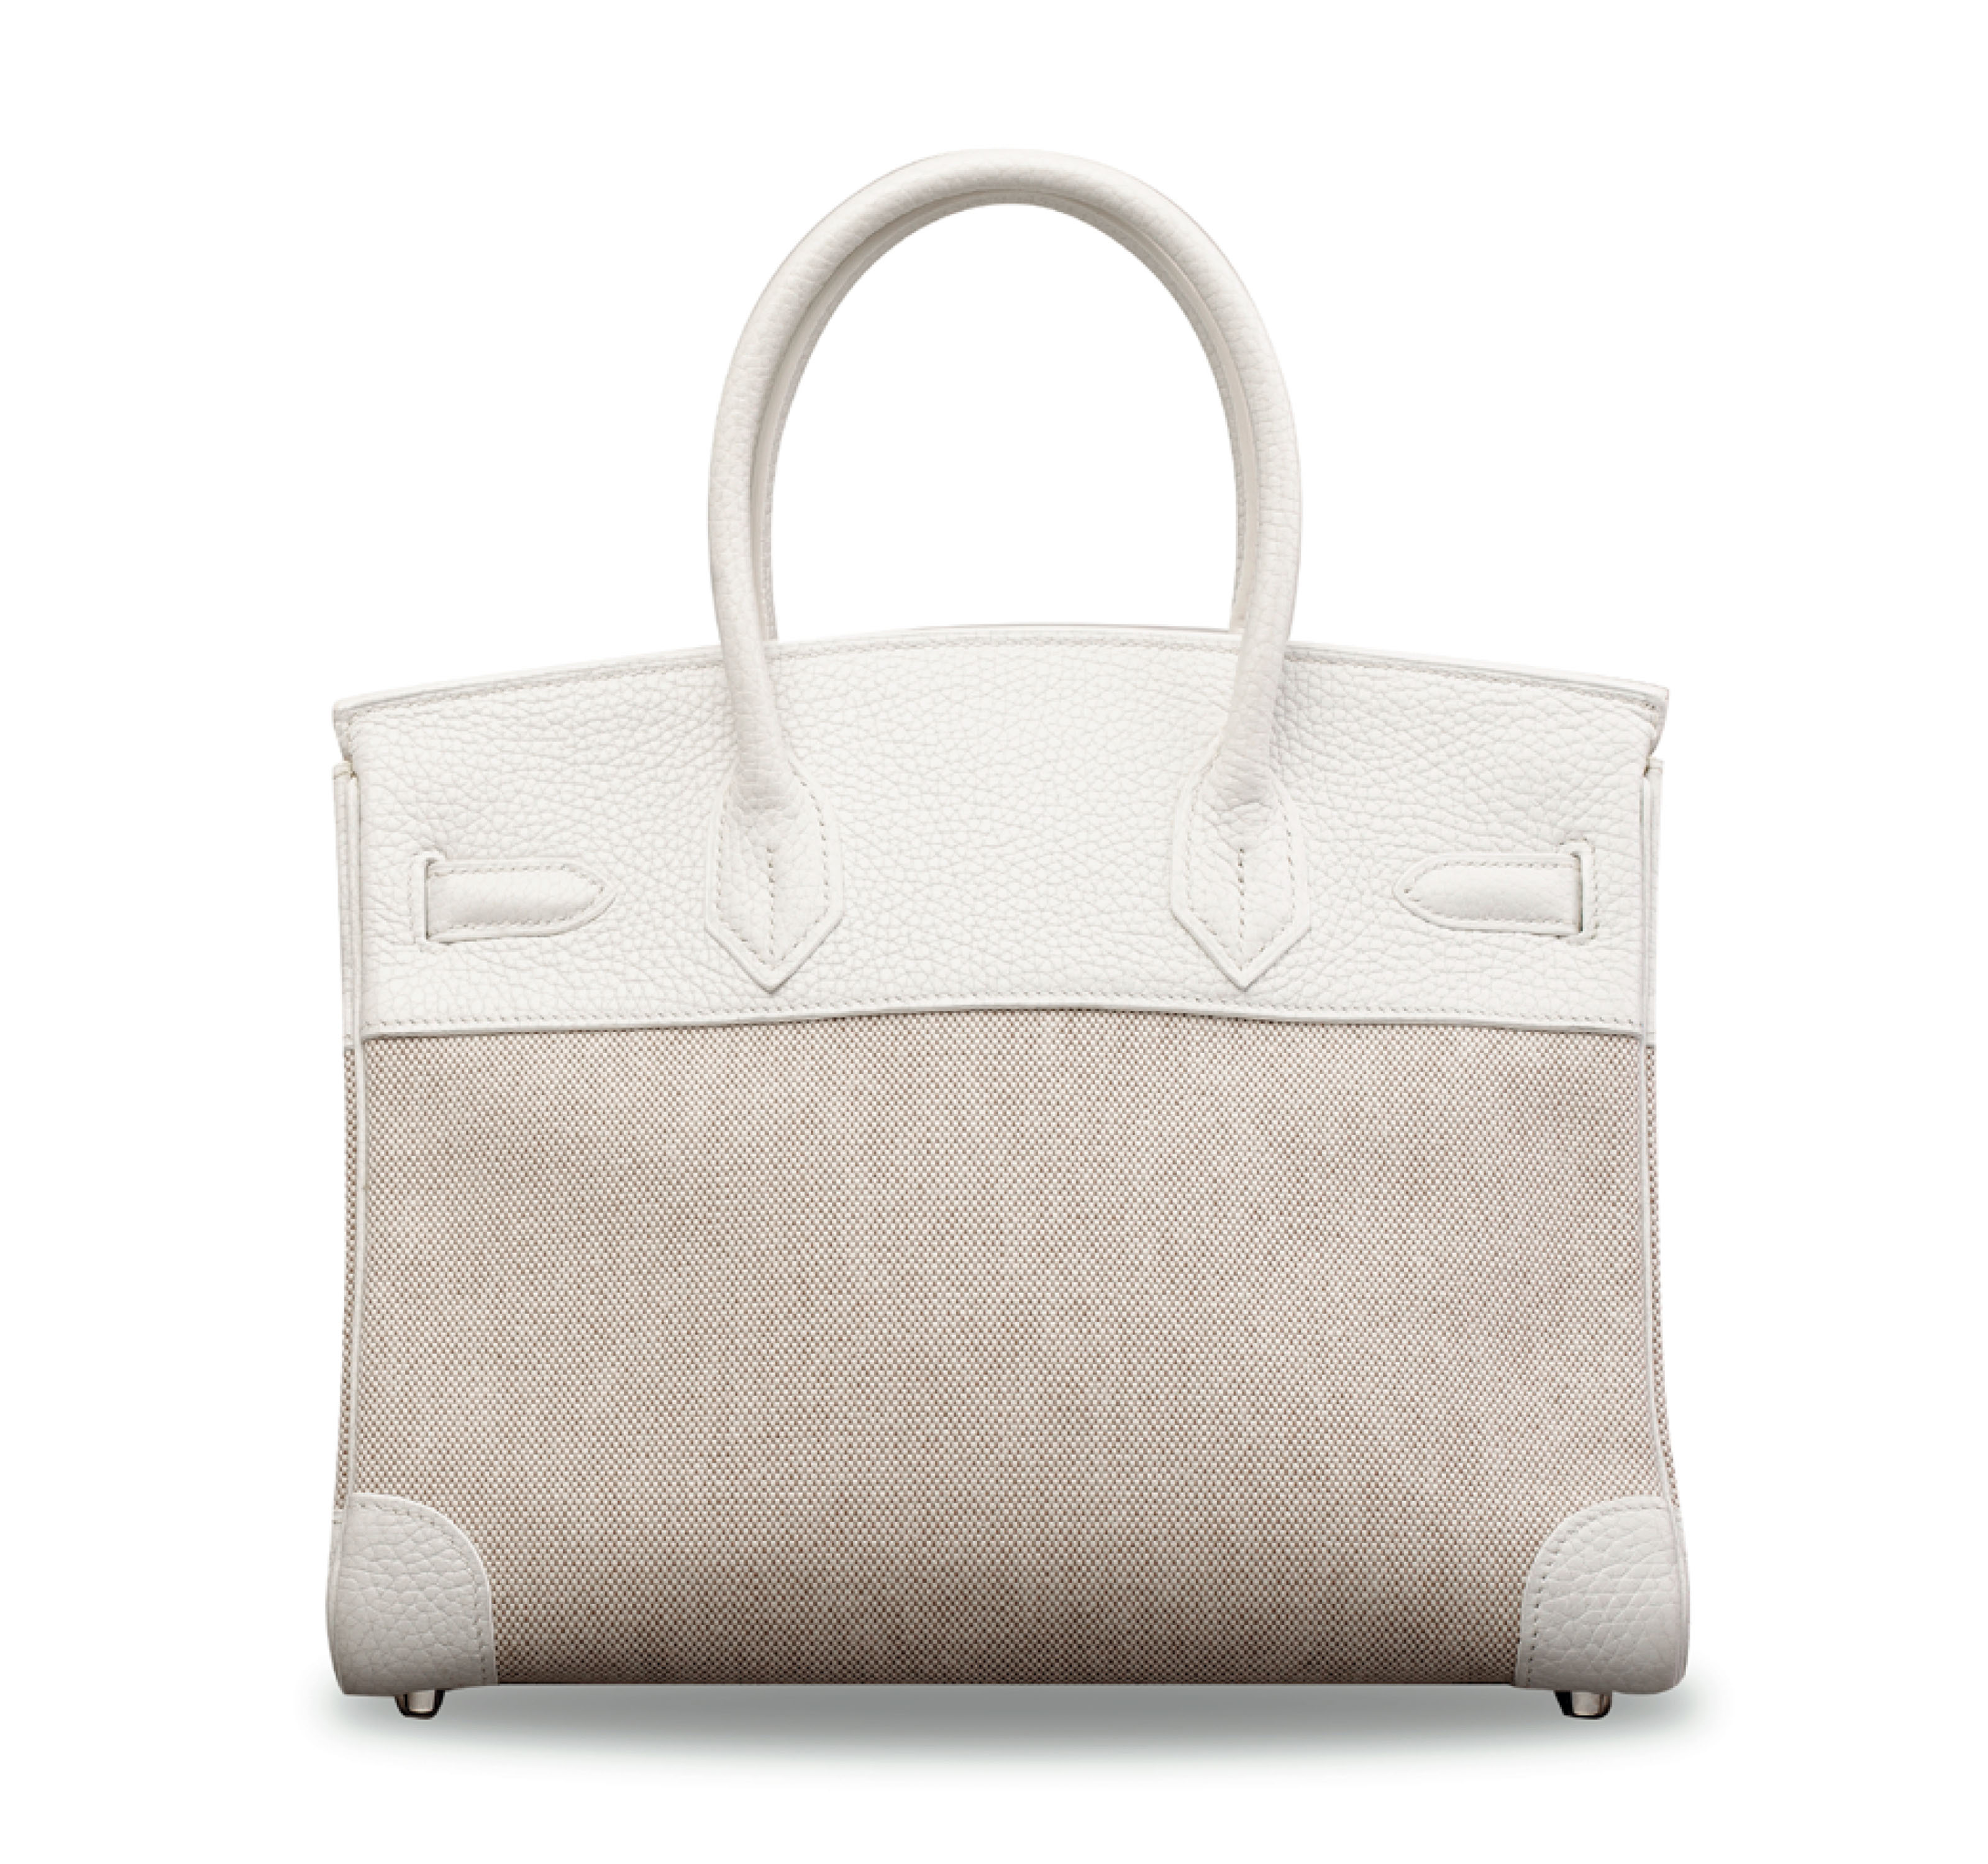 A WHITE CLÉMENCE LEATHER & TOI